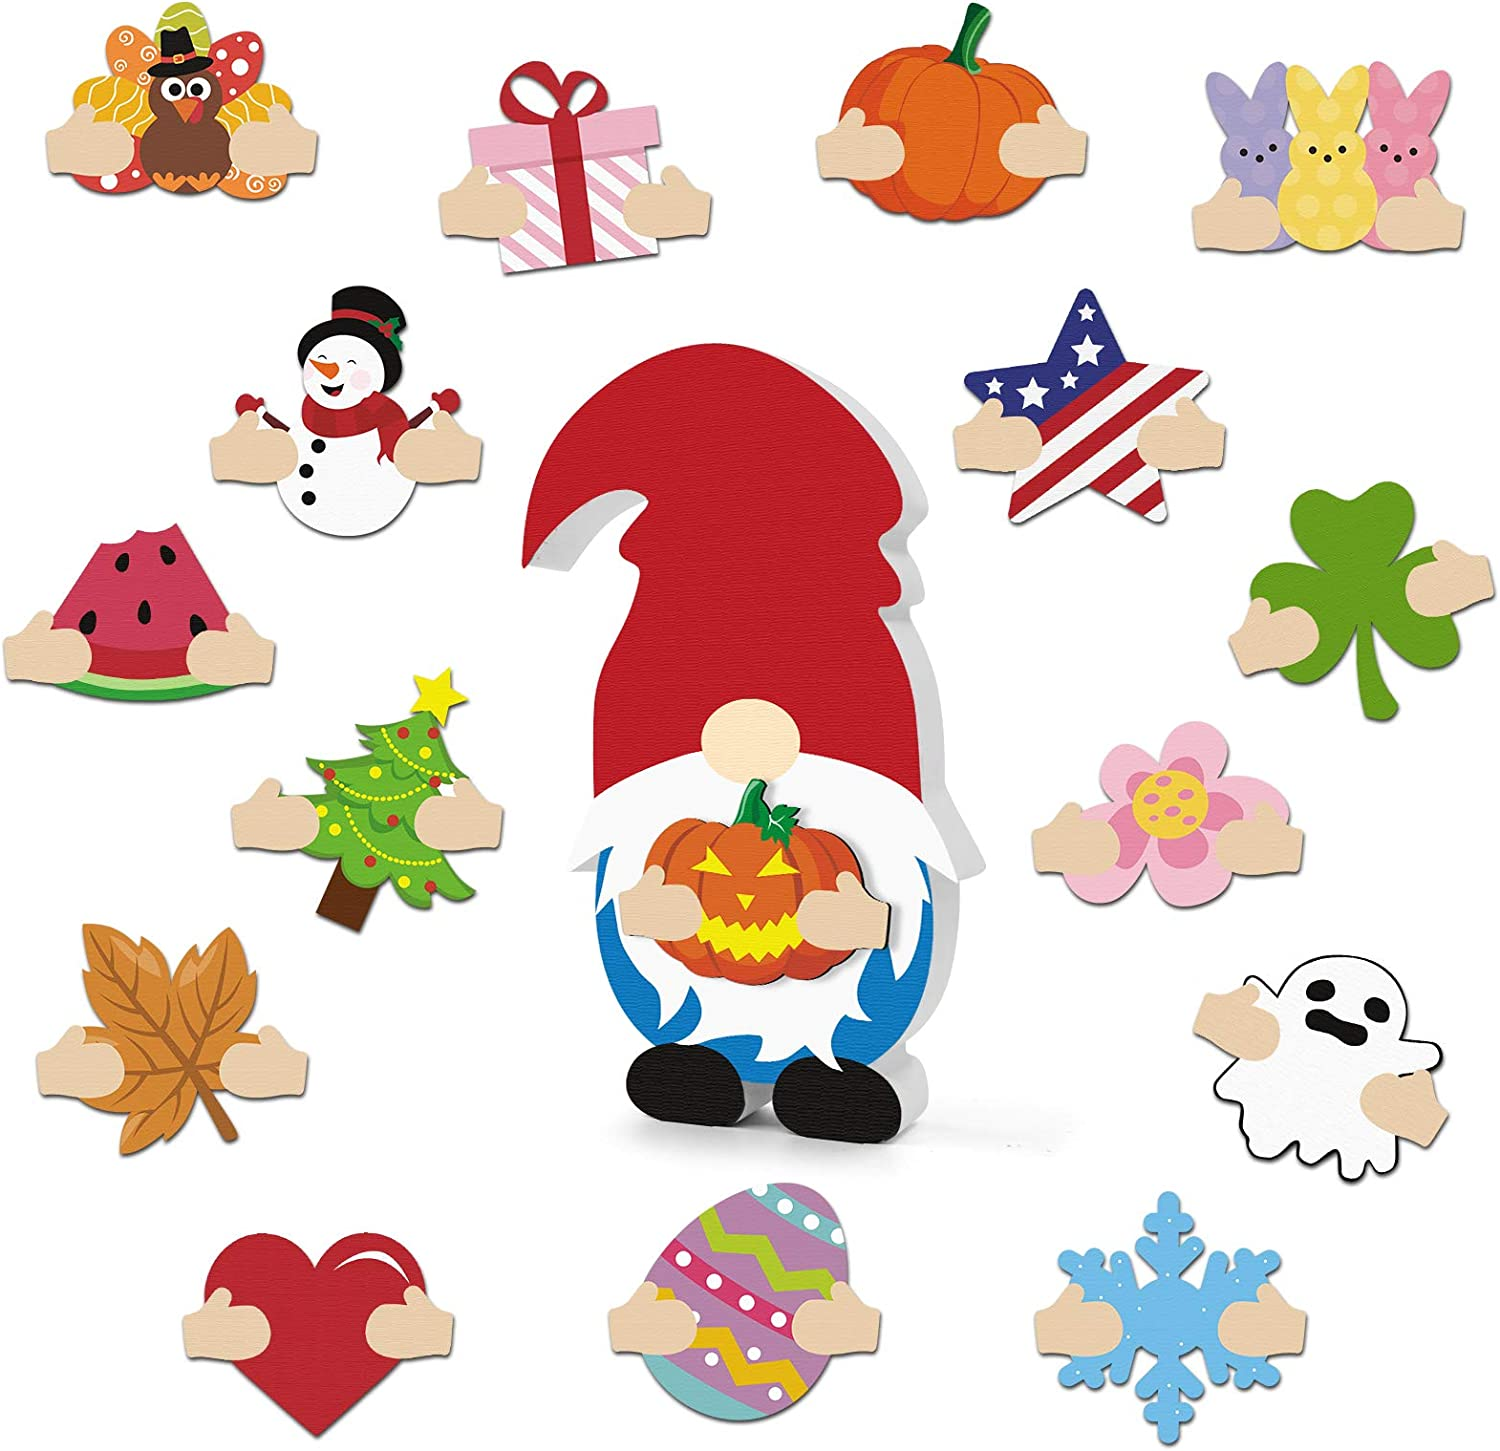 Huray Rayho DIY Wooden Gnome with Detachable Magnet Wood Patches Interchangeable Cutouts Kit Seasonal Craft Chunky Gnome Decorative Home Sign Fall Thanksgiving Christmas